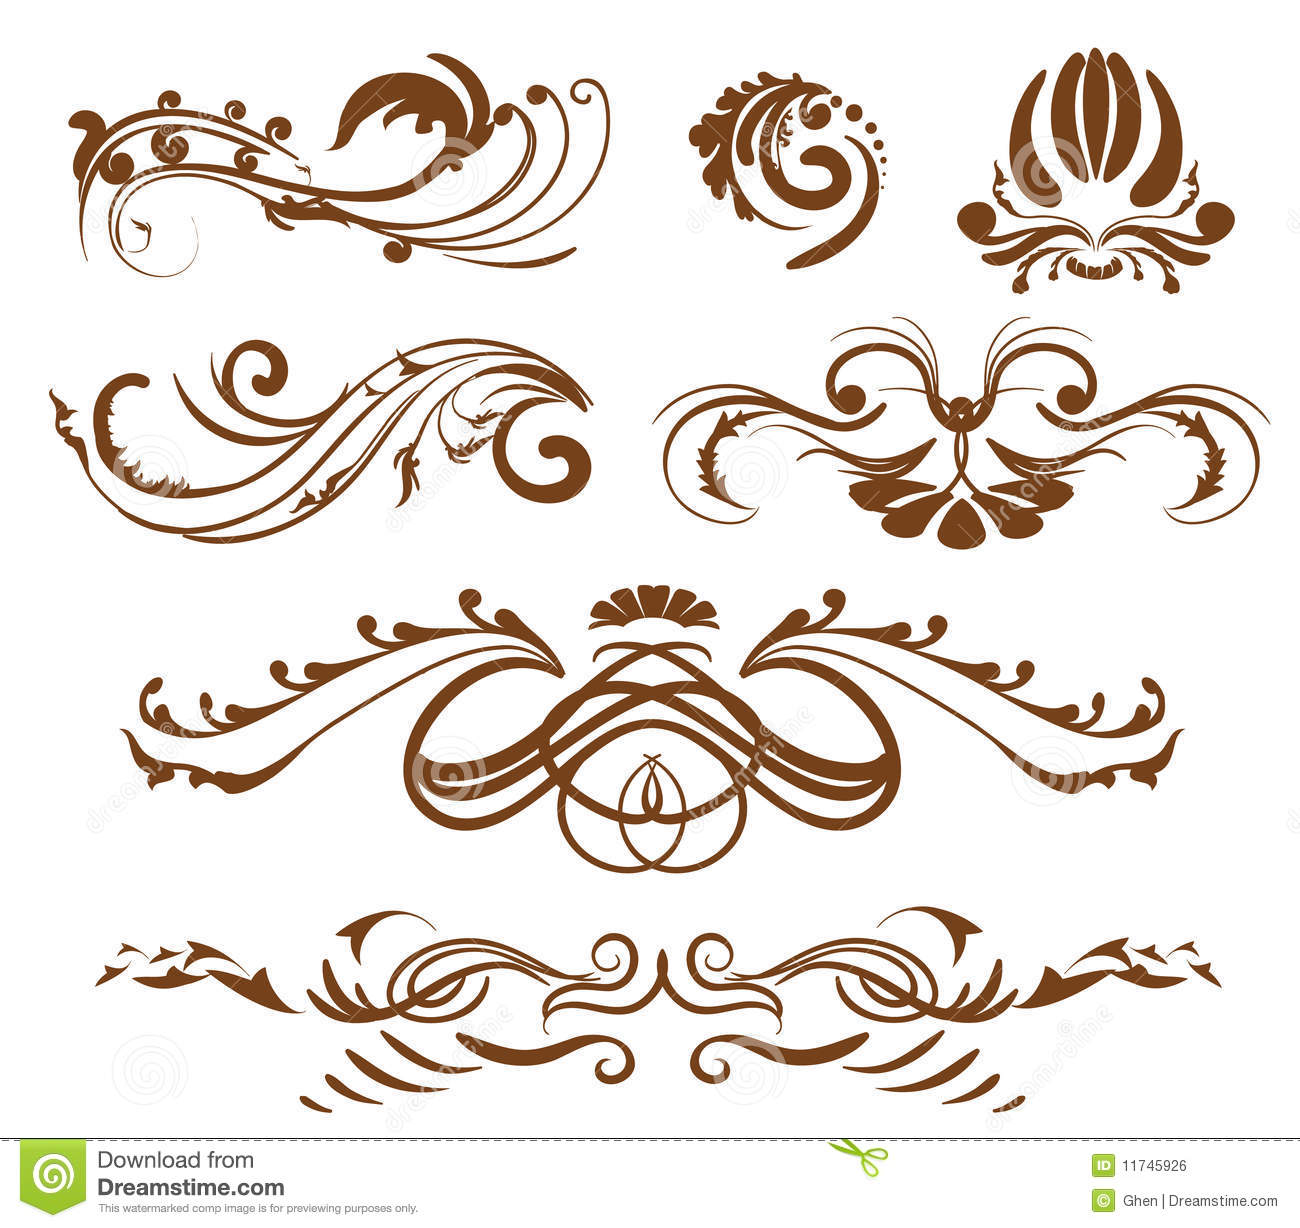 Elements By Design : Ornamental design elements stock vector image of branch